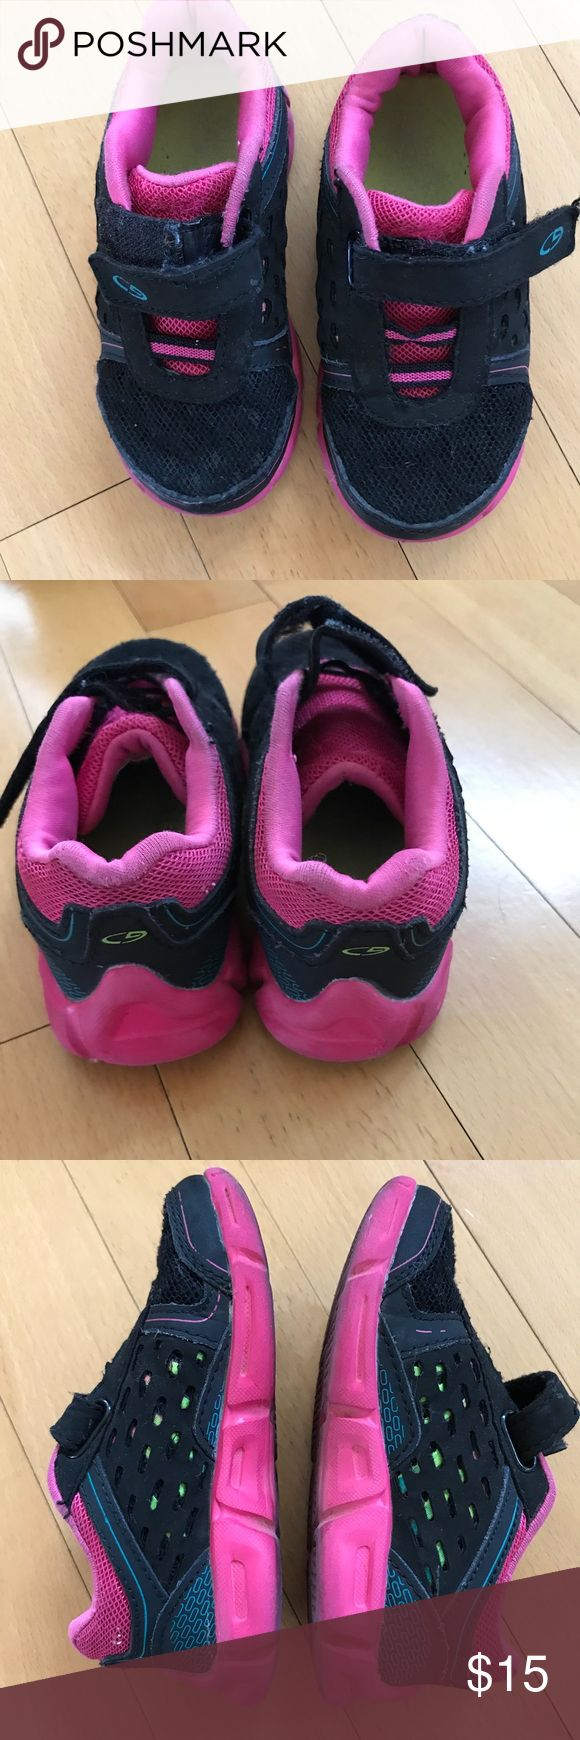 Girls sneakers toddler size 8 Girls Sneakers toddler size 8 Shoes Sneakers